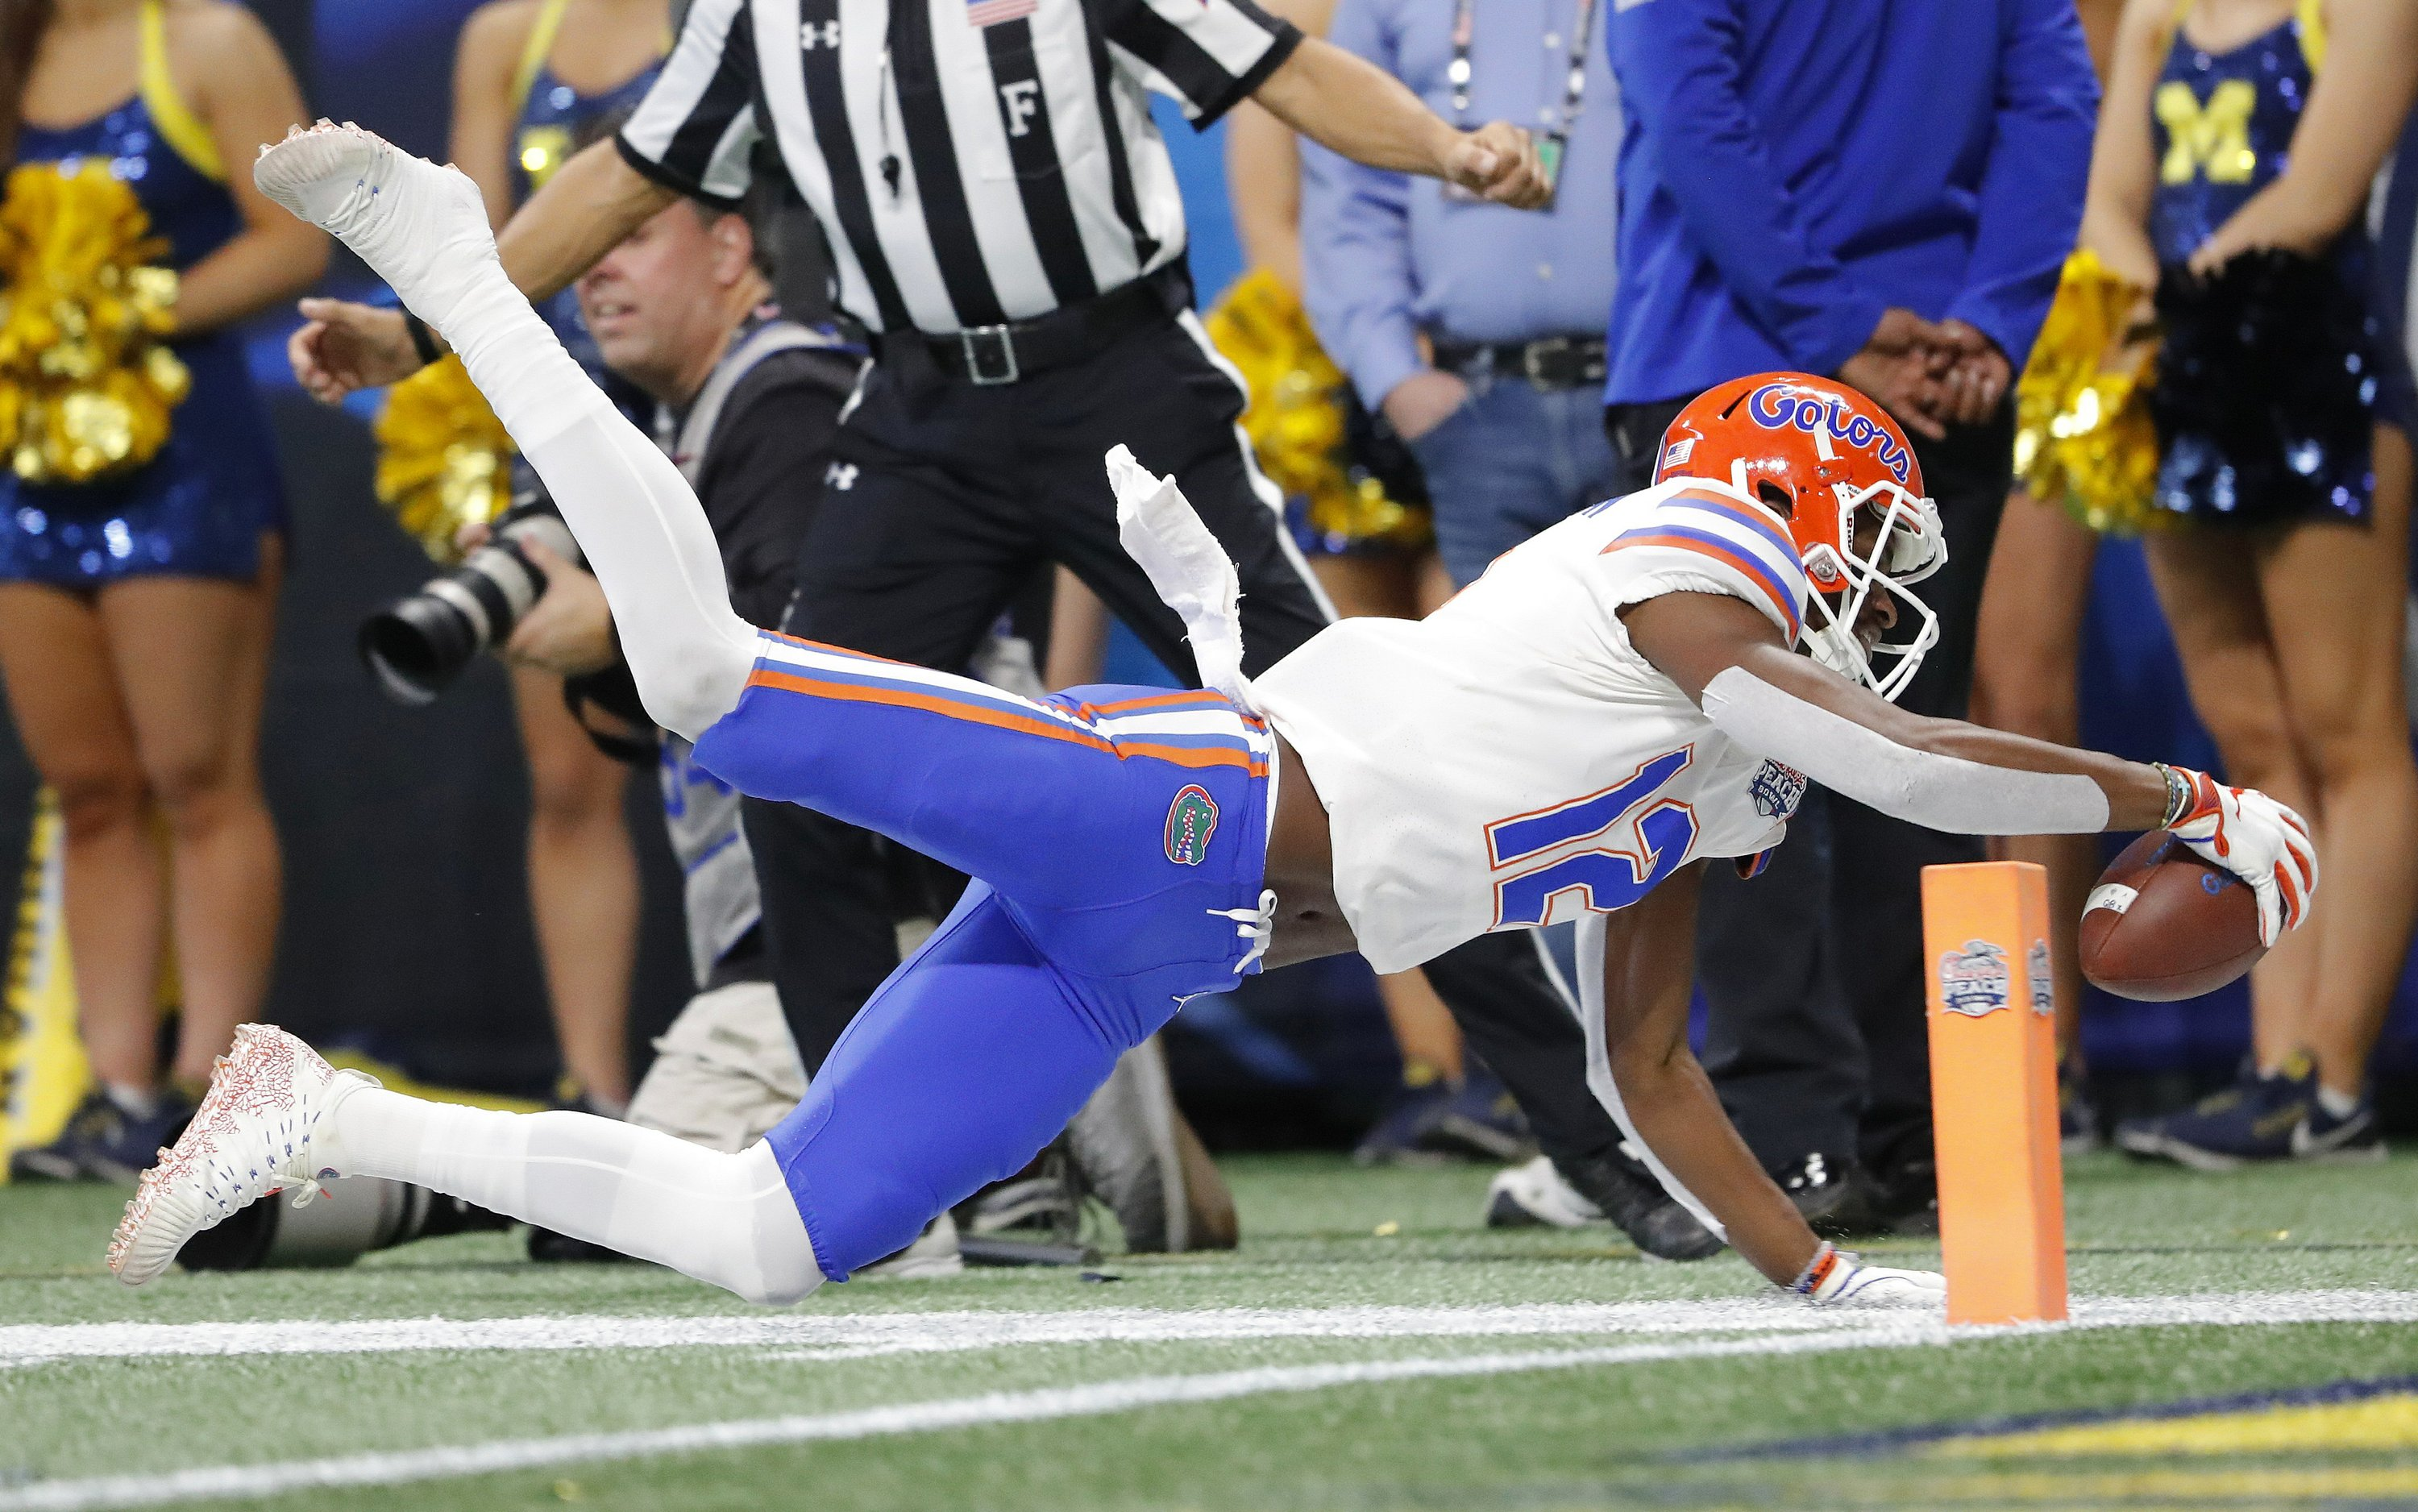 Dan Mullen Gators >> Peach Bowl: Gators rout Michigan 41-15 to cap comeback year